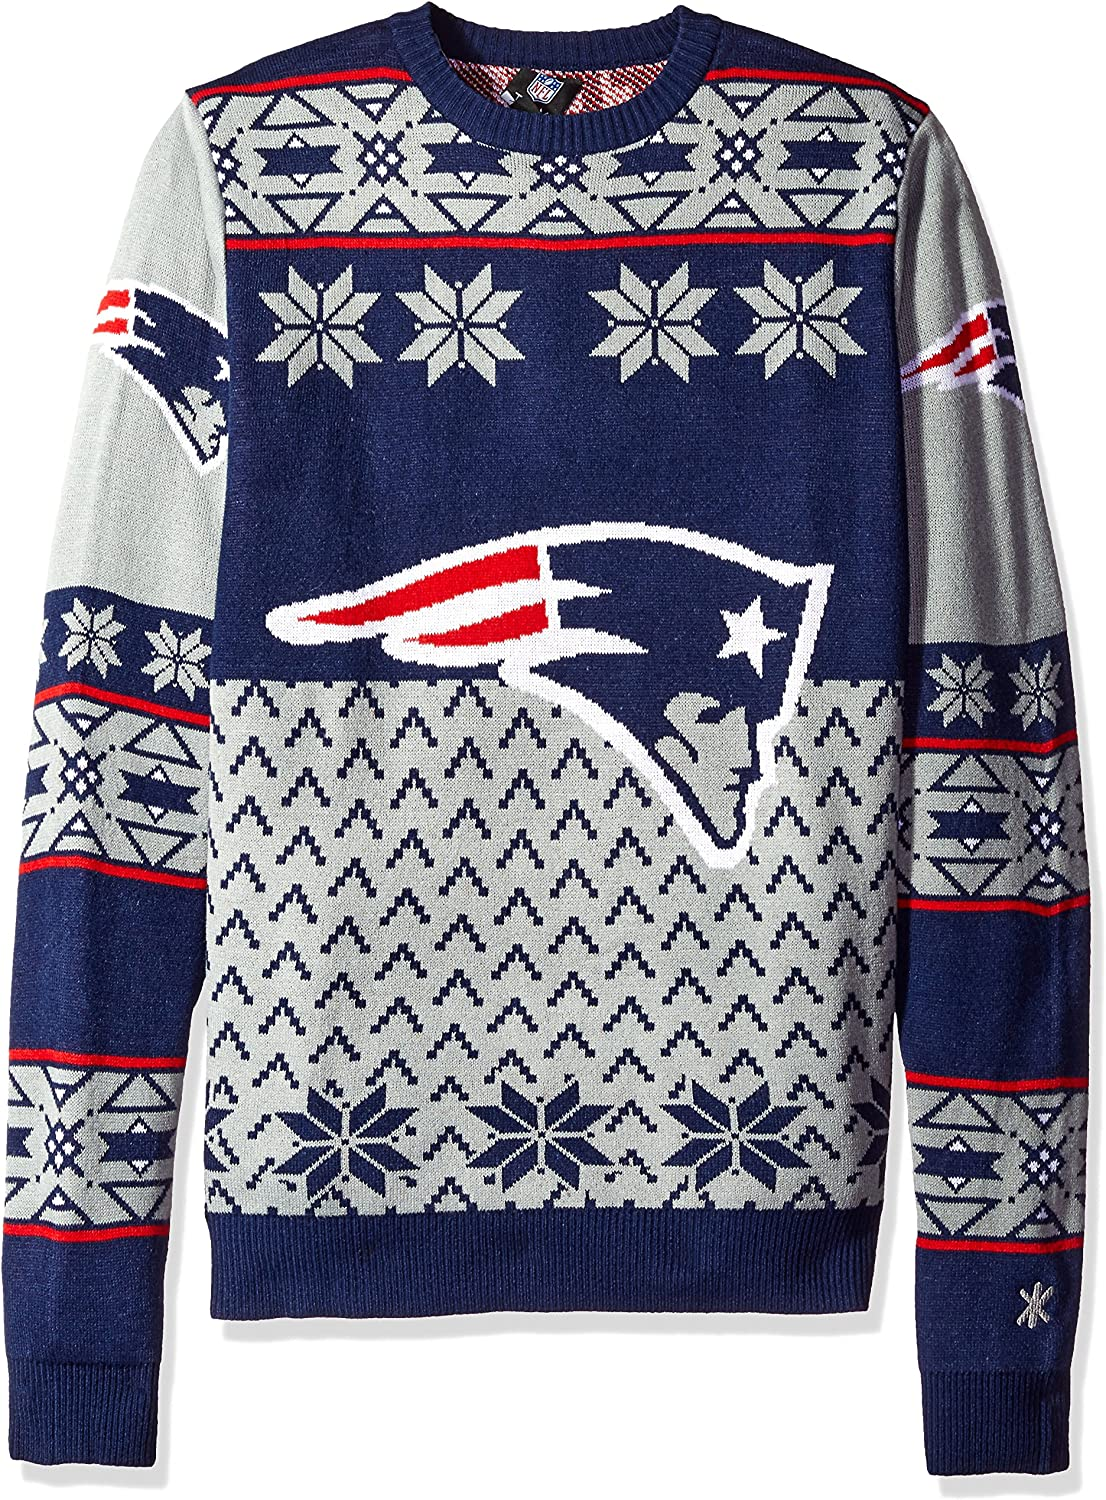 New England Patriots Big Logo Ugly Crew Neck Sweater Double Extra Large